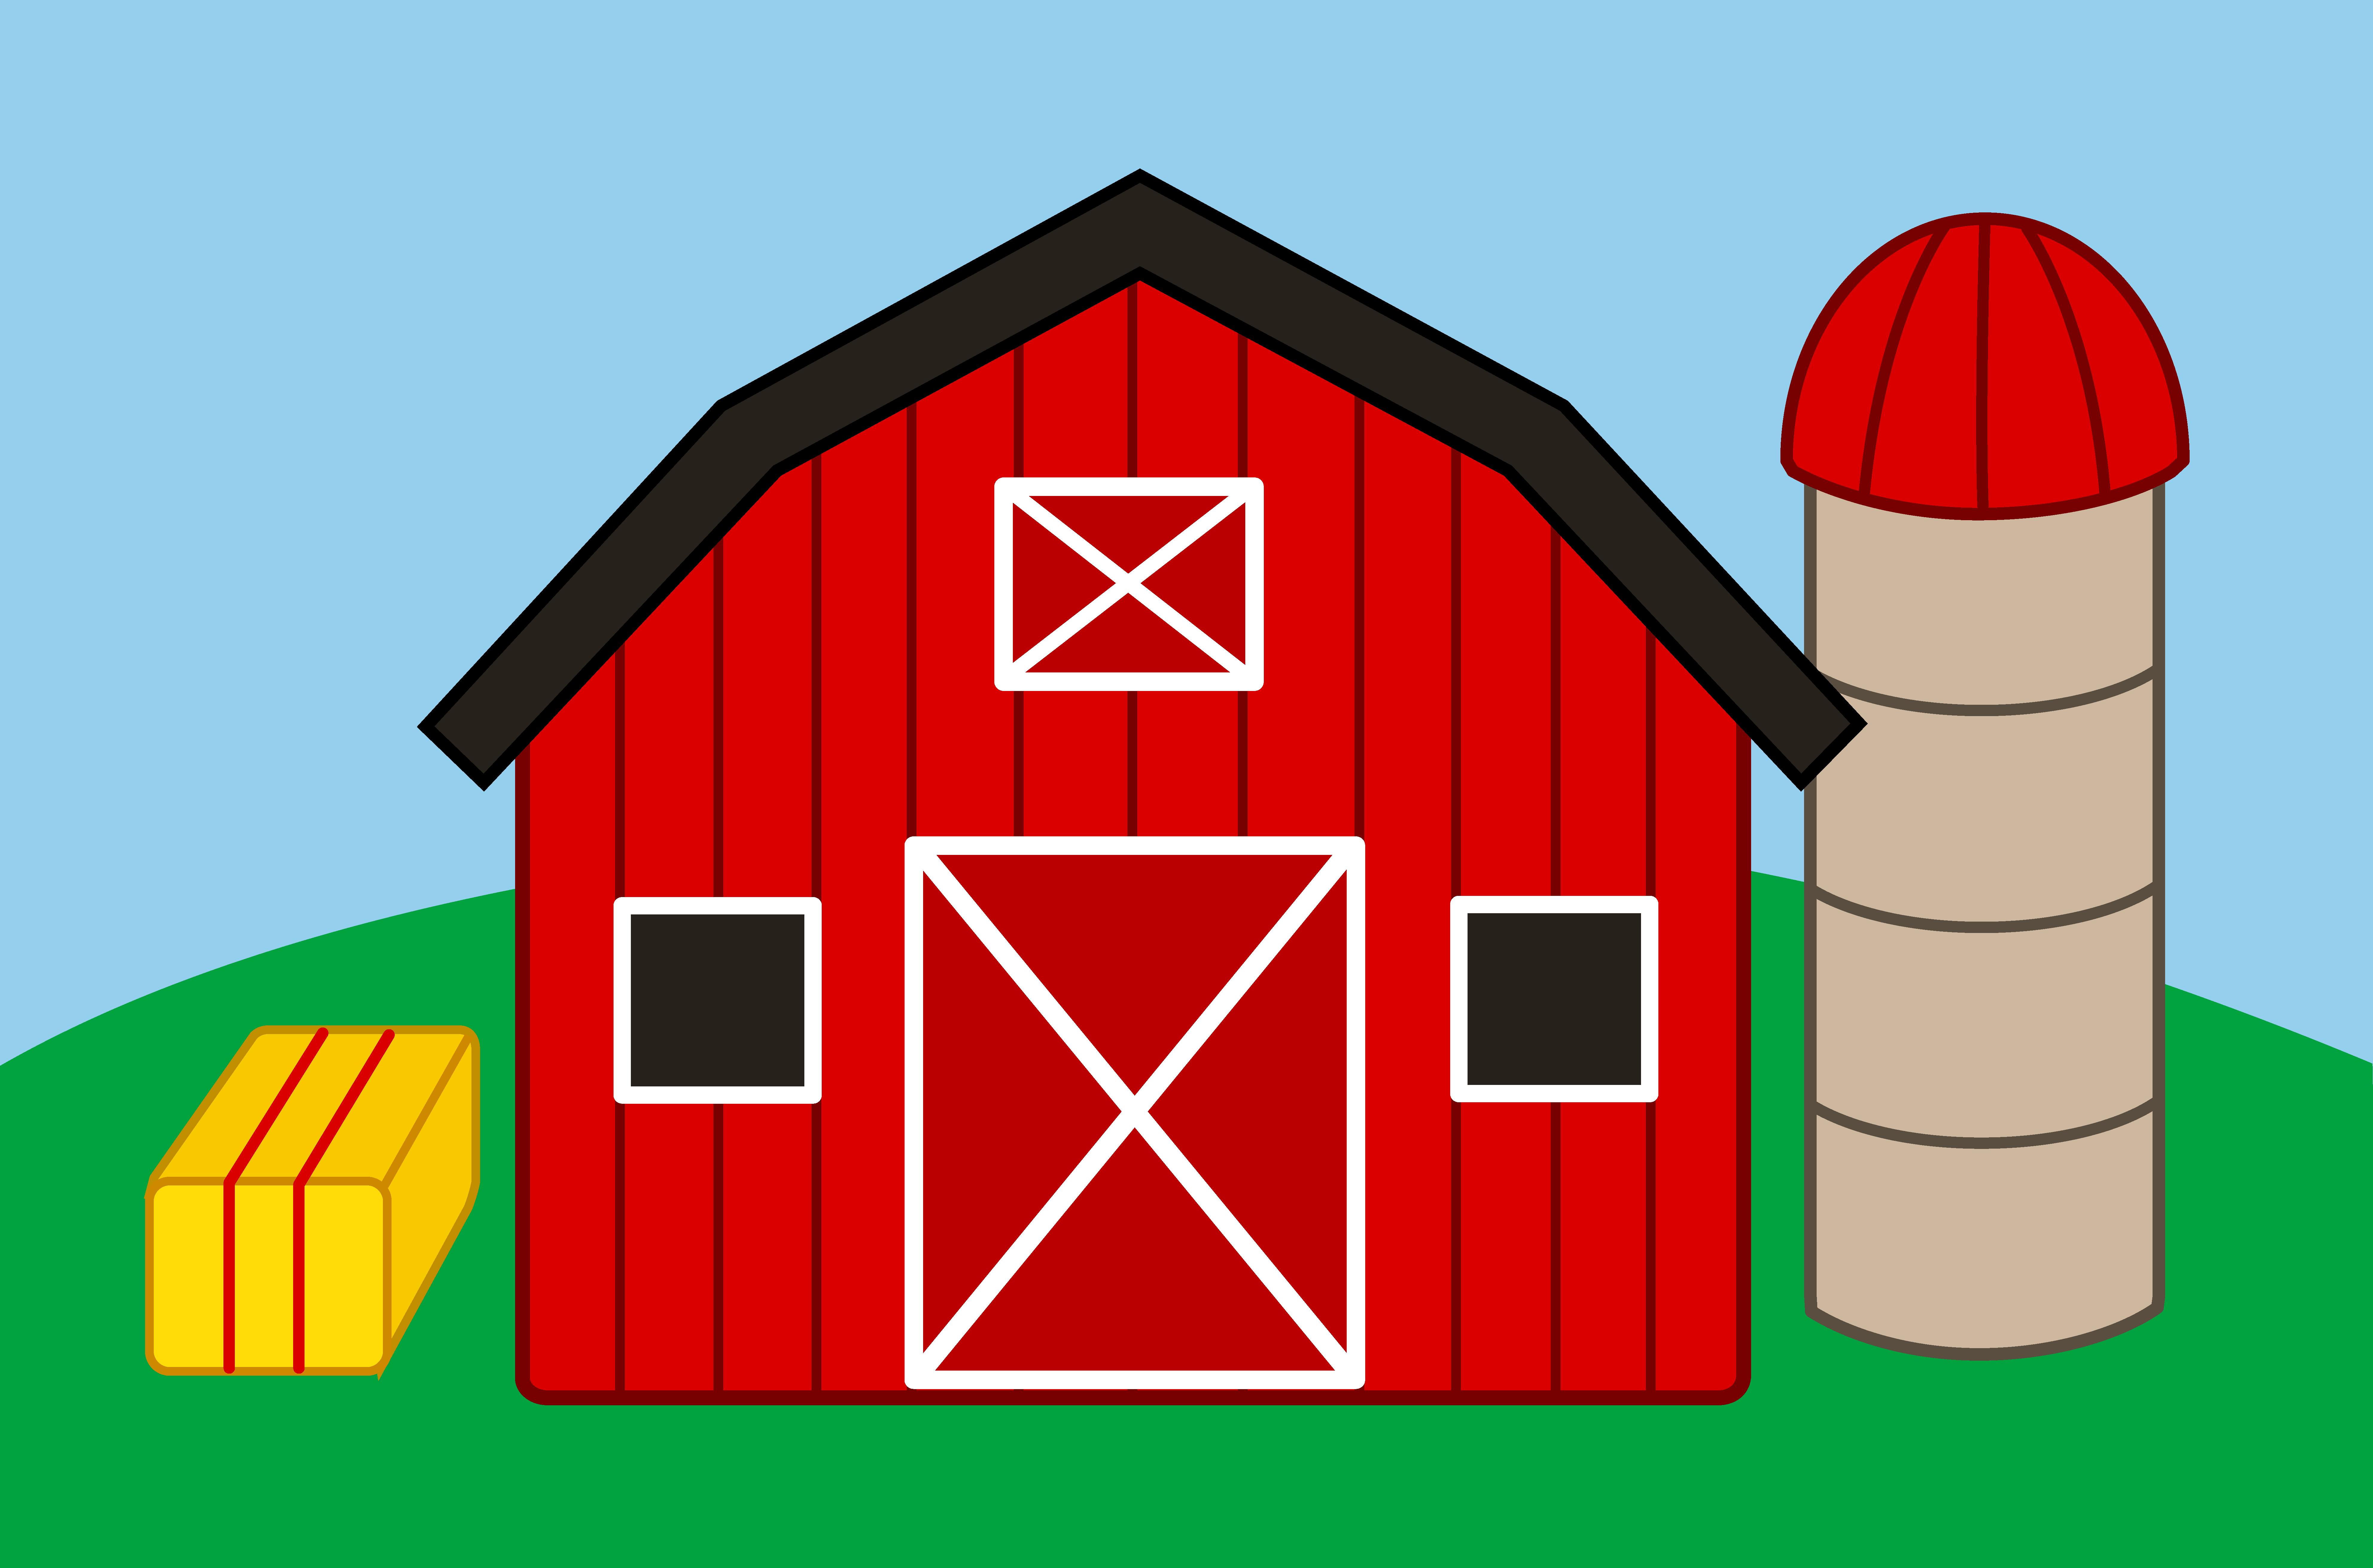 cute barn on farm cut out windows for kids to take pictures rh pinterest com download pictures of cartoon farm house cartoon farm house images